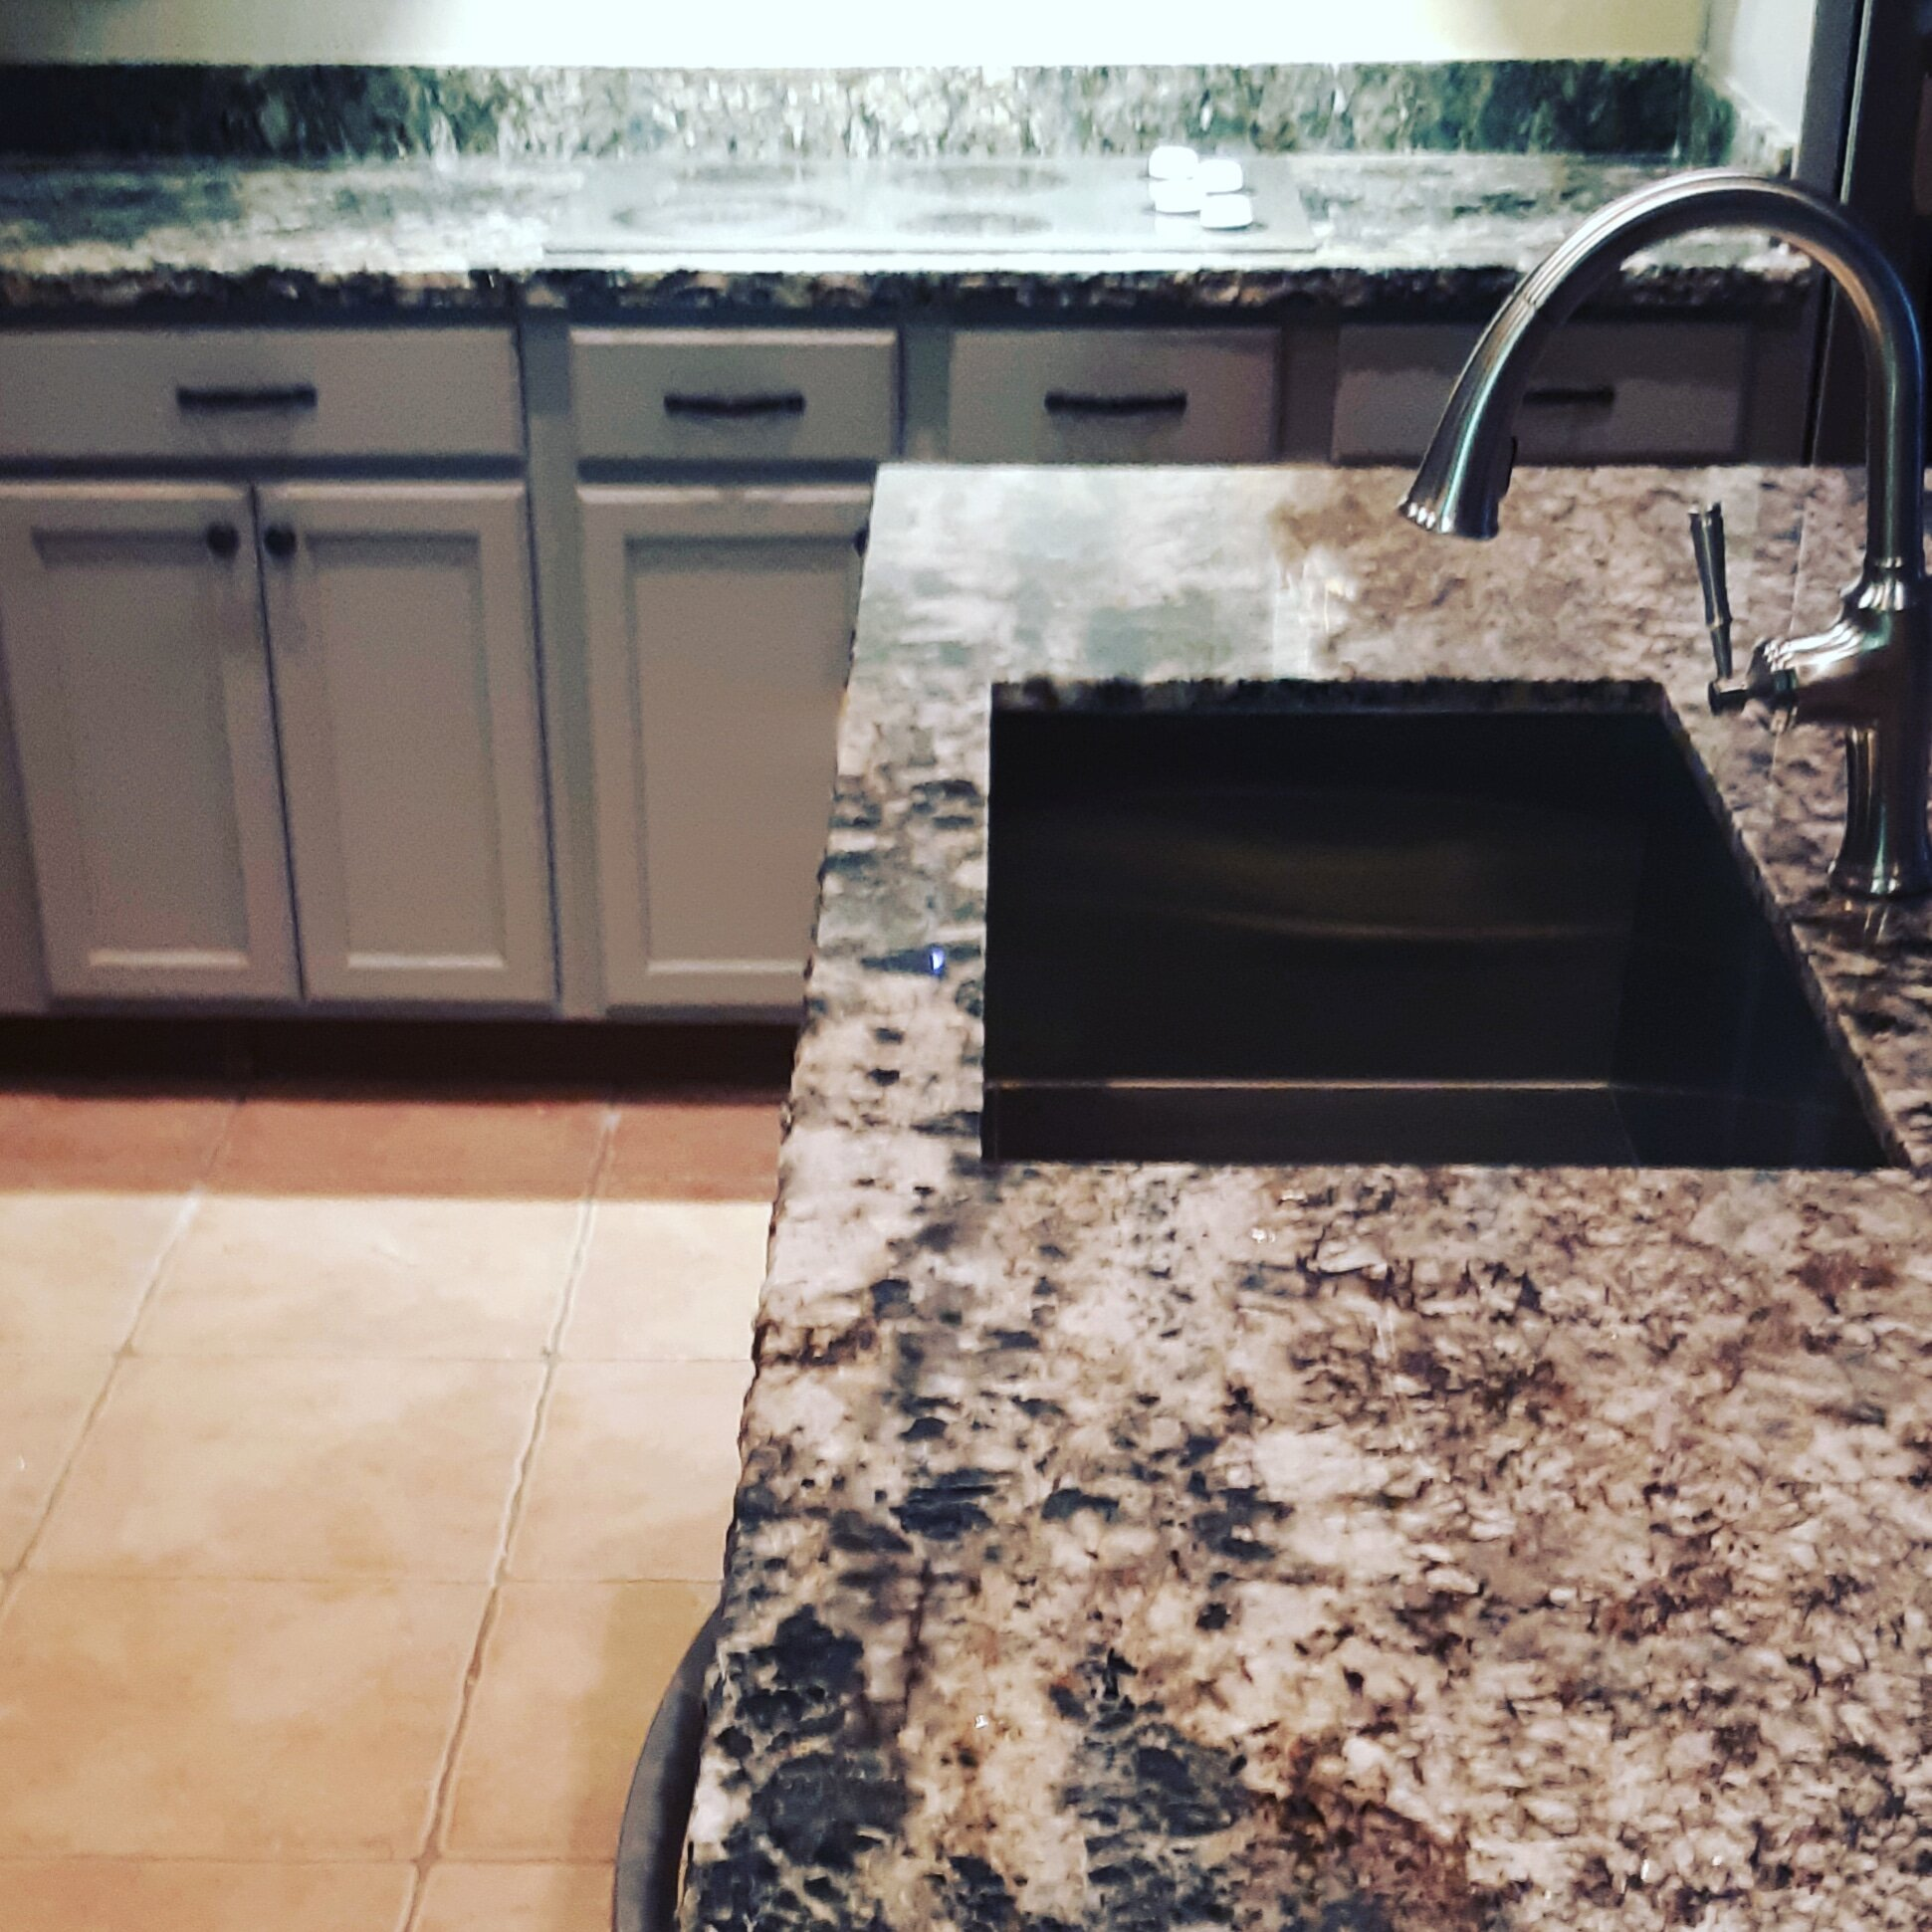 Granite Countertops - Are you thinking about getting new countertops? Replacing your existing countertops with Granite can be a great way to enhance the Beauty in your home while also showcasing your own personal style. Adding Granite countertops can also be a great investment for rental properties, investment properties or just aging place residents. . With over 200 different colors to choose from, finding the right fit for your kitchen or bathroom has never been easier.